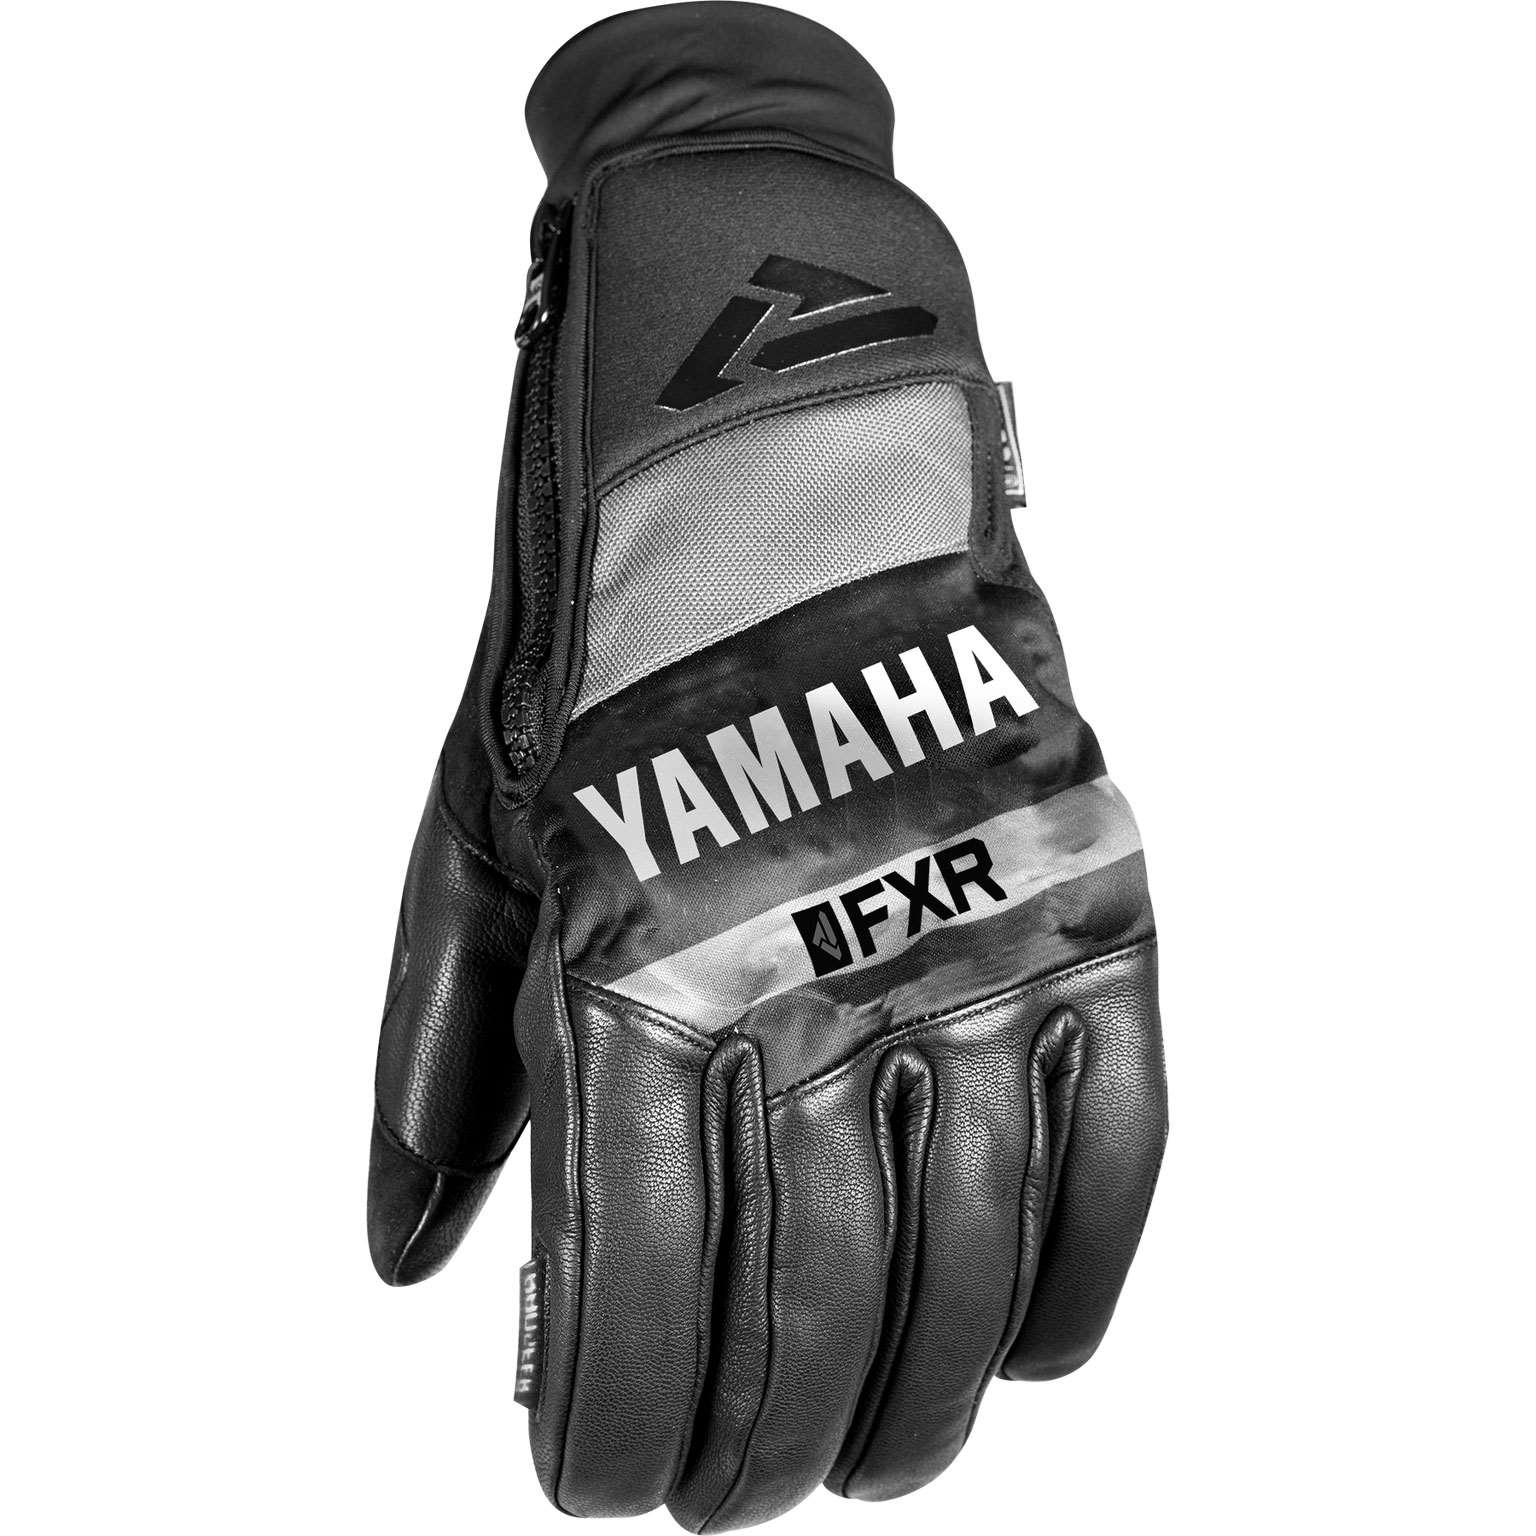 YAMAHA TRANSFER PRO-TEC LEATHER GLOVES BY FXR®